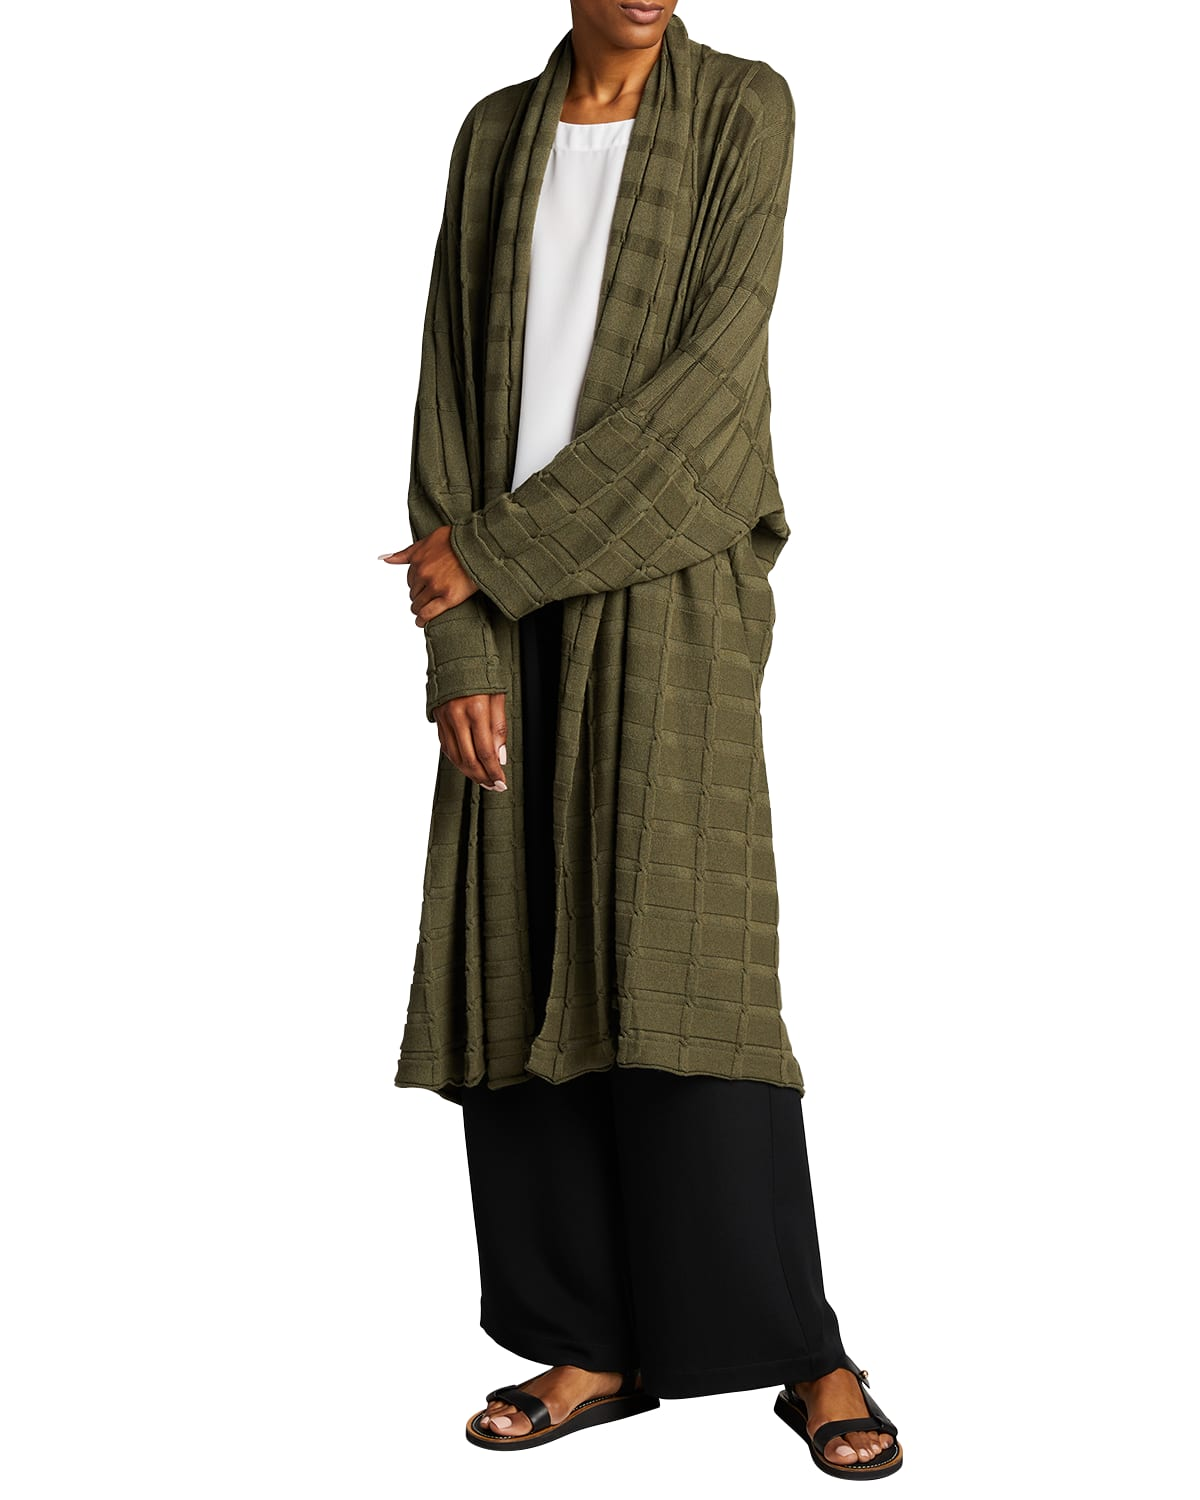 Wide Square Cashmere Duster Cardigan